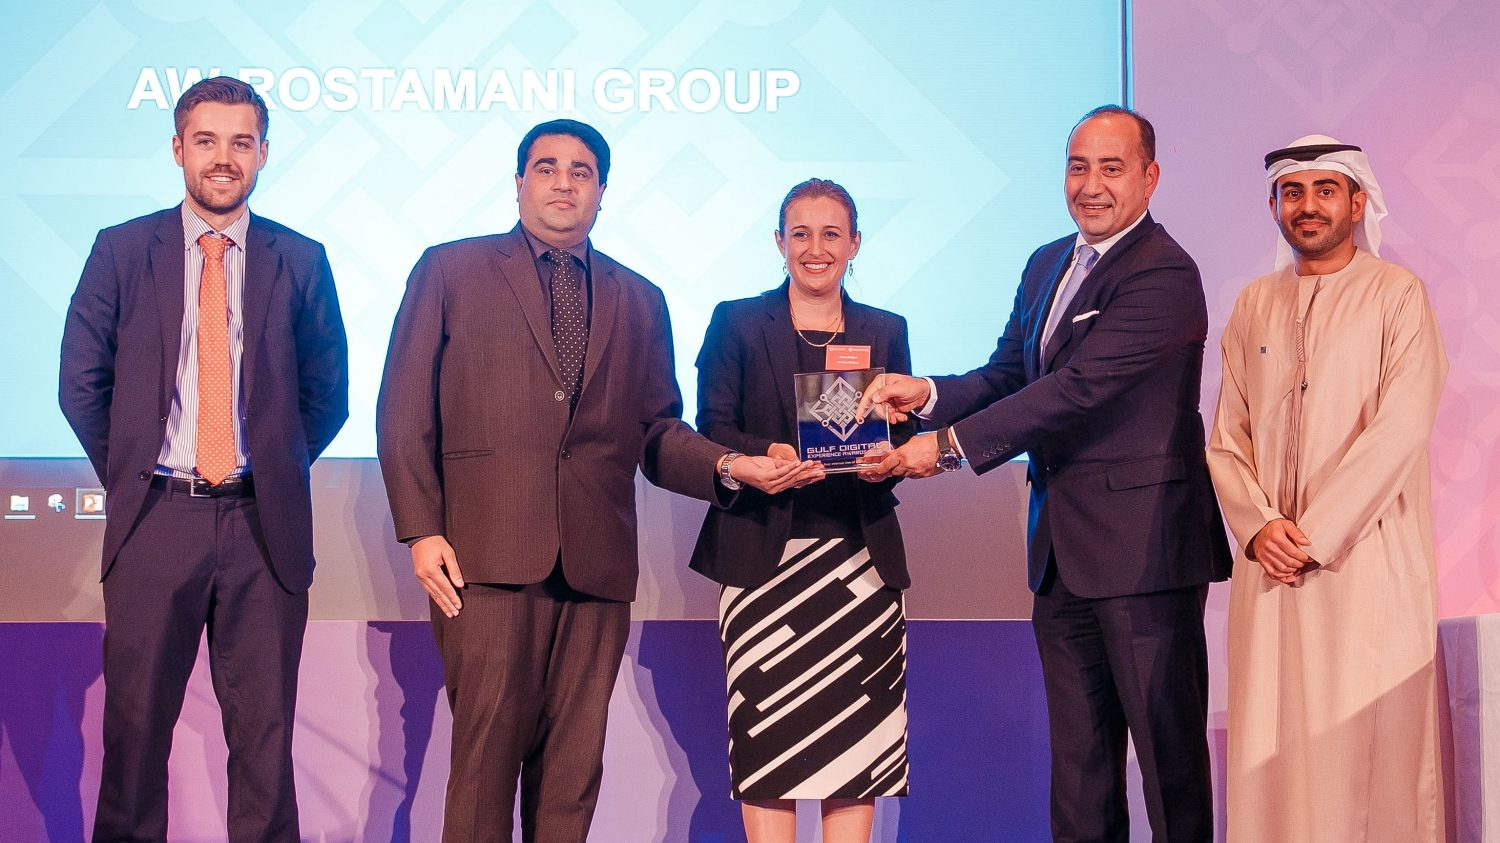 Arabian Automobiles Company Awarded 'Best Internal Use' by Gulf Digital Experience